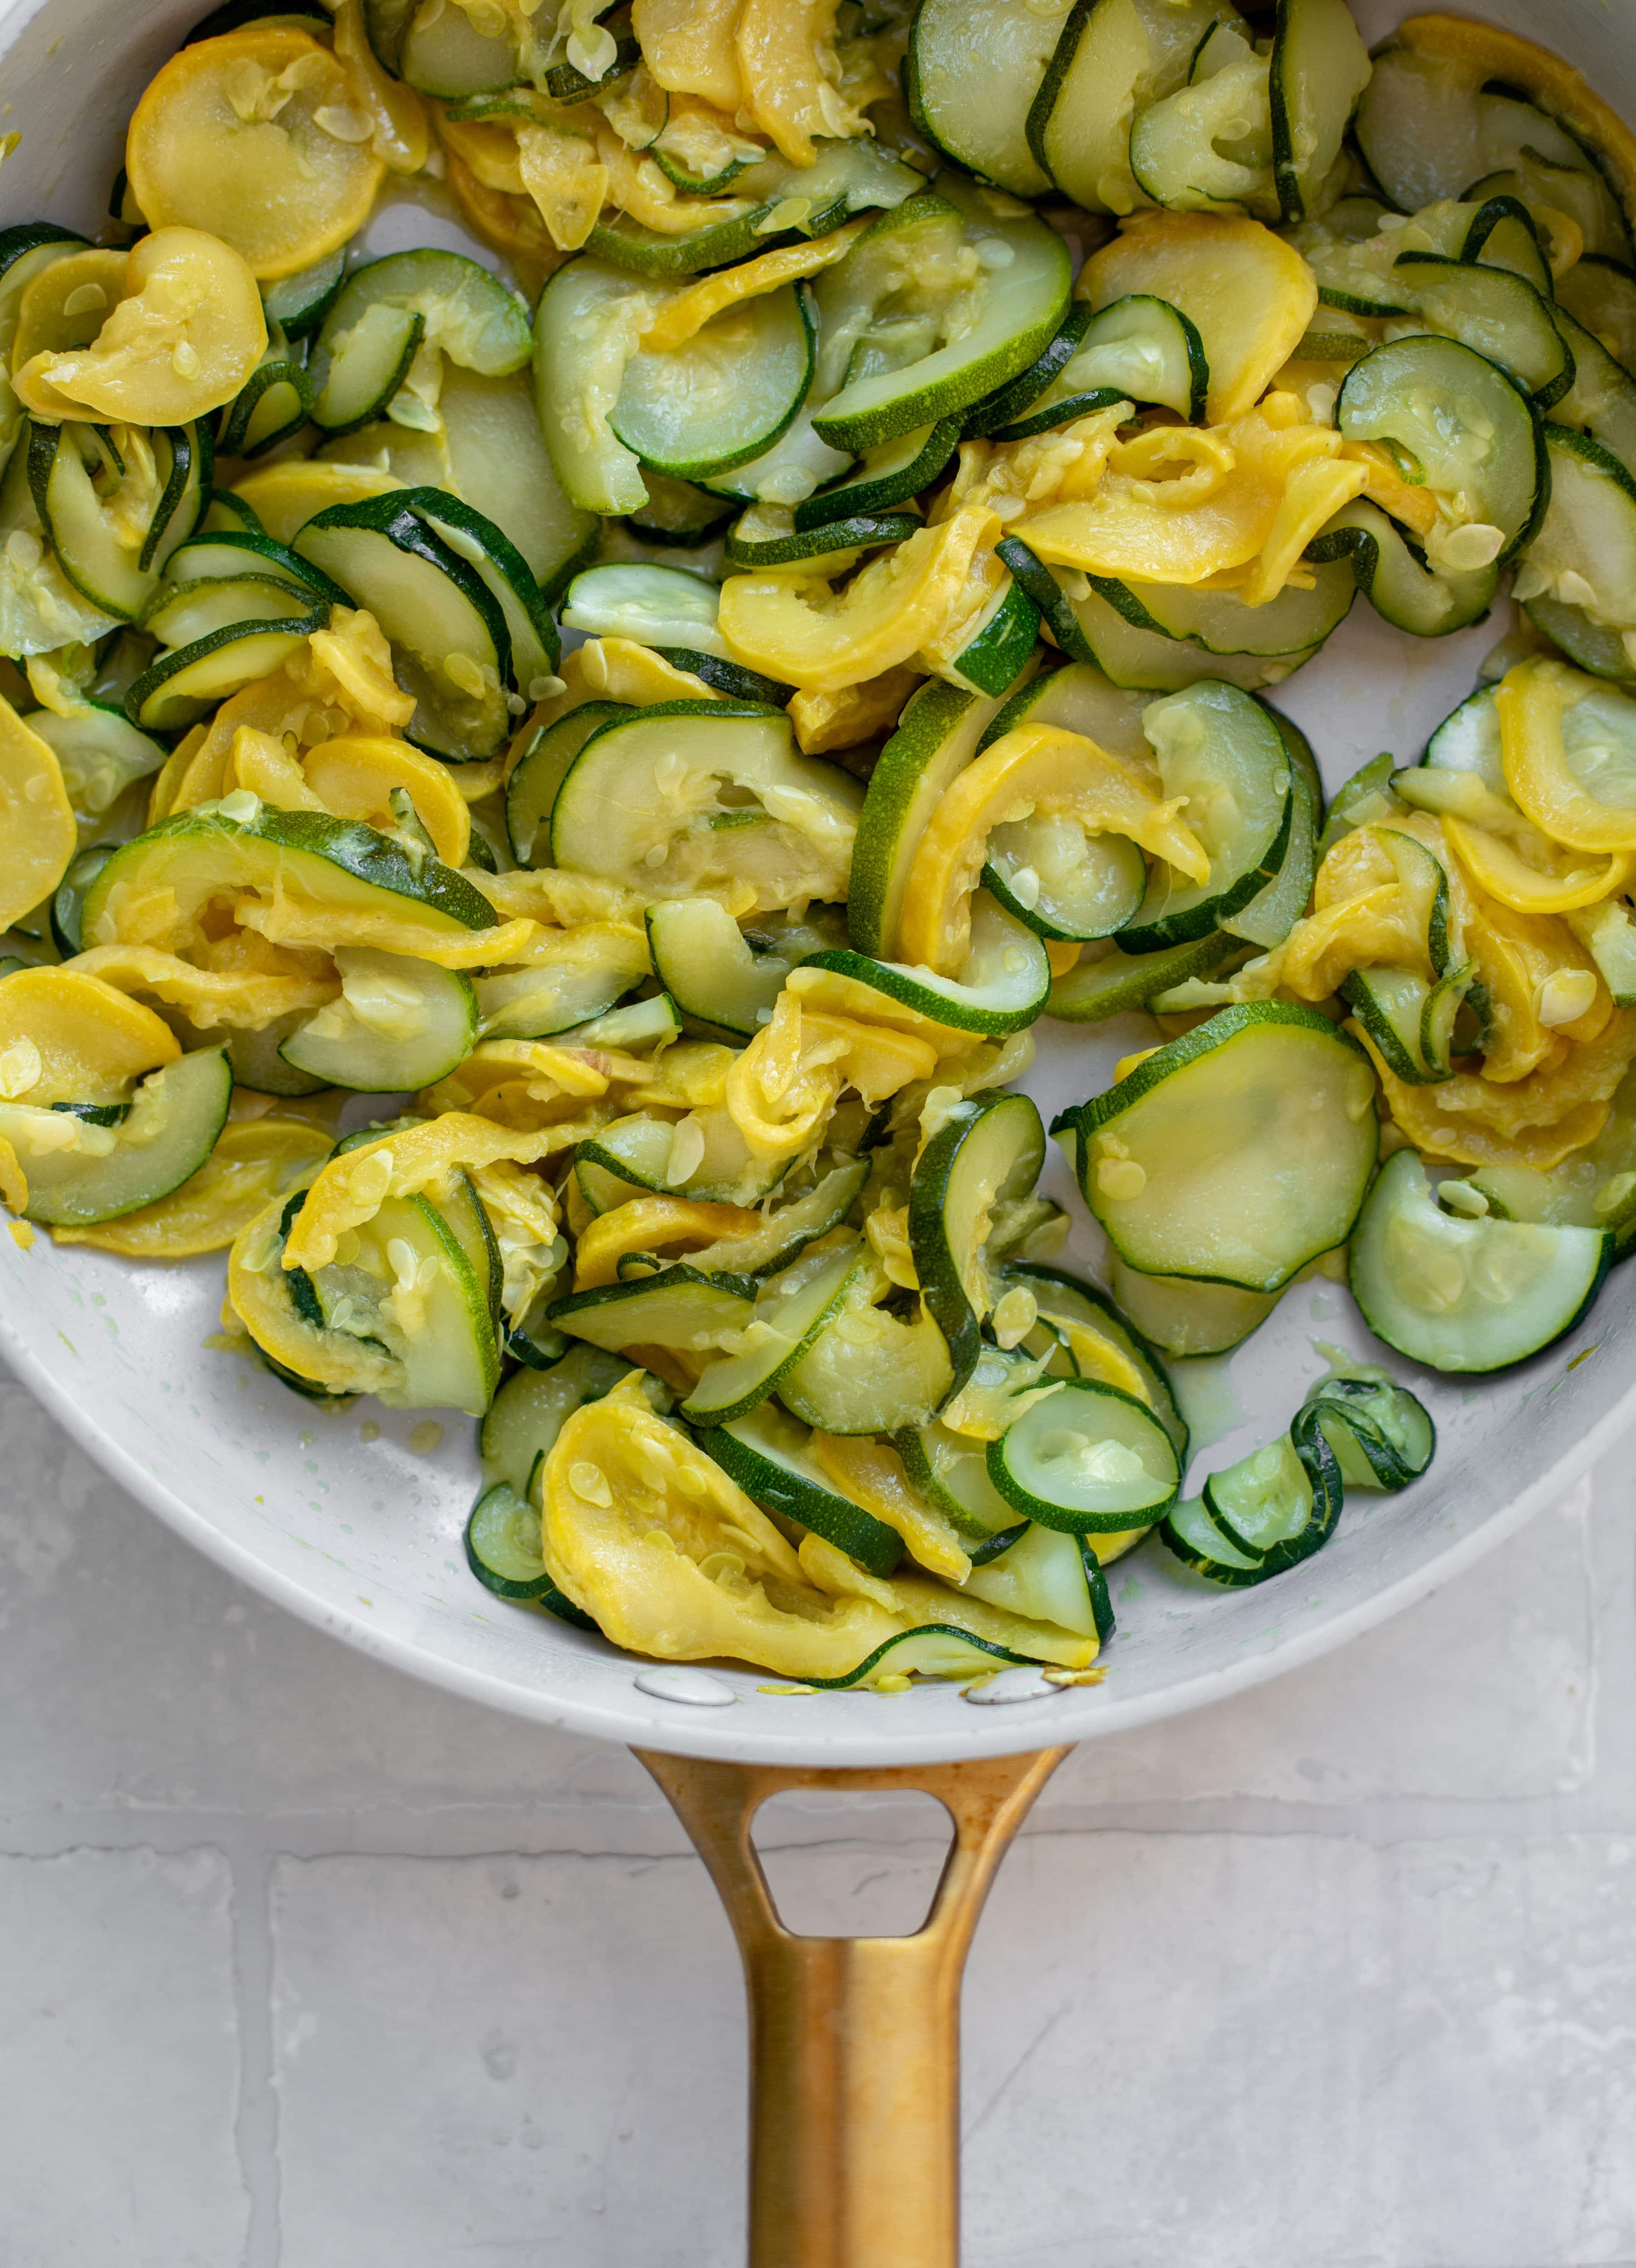 summer squash and zucchini in a skillet